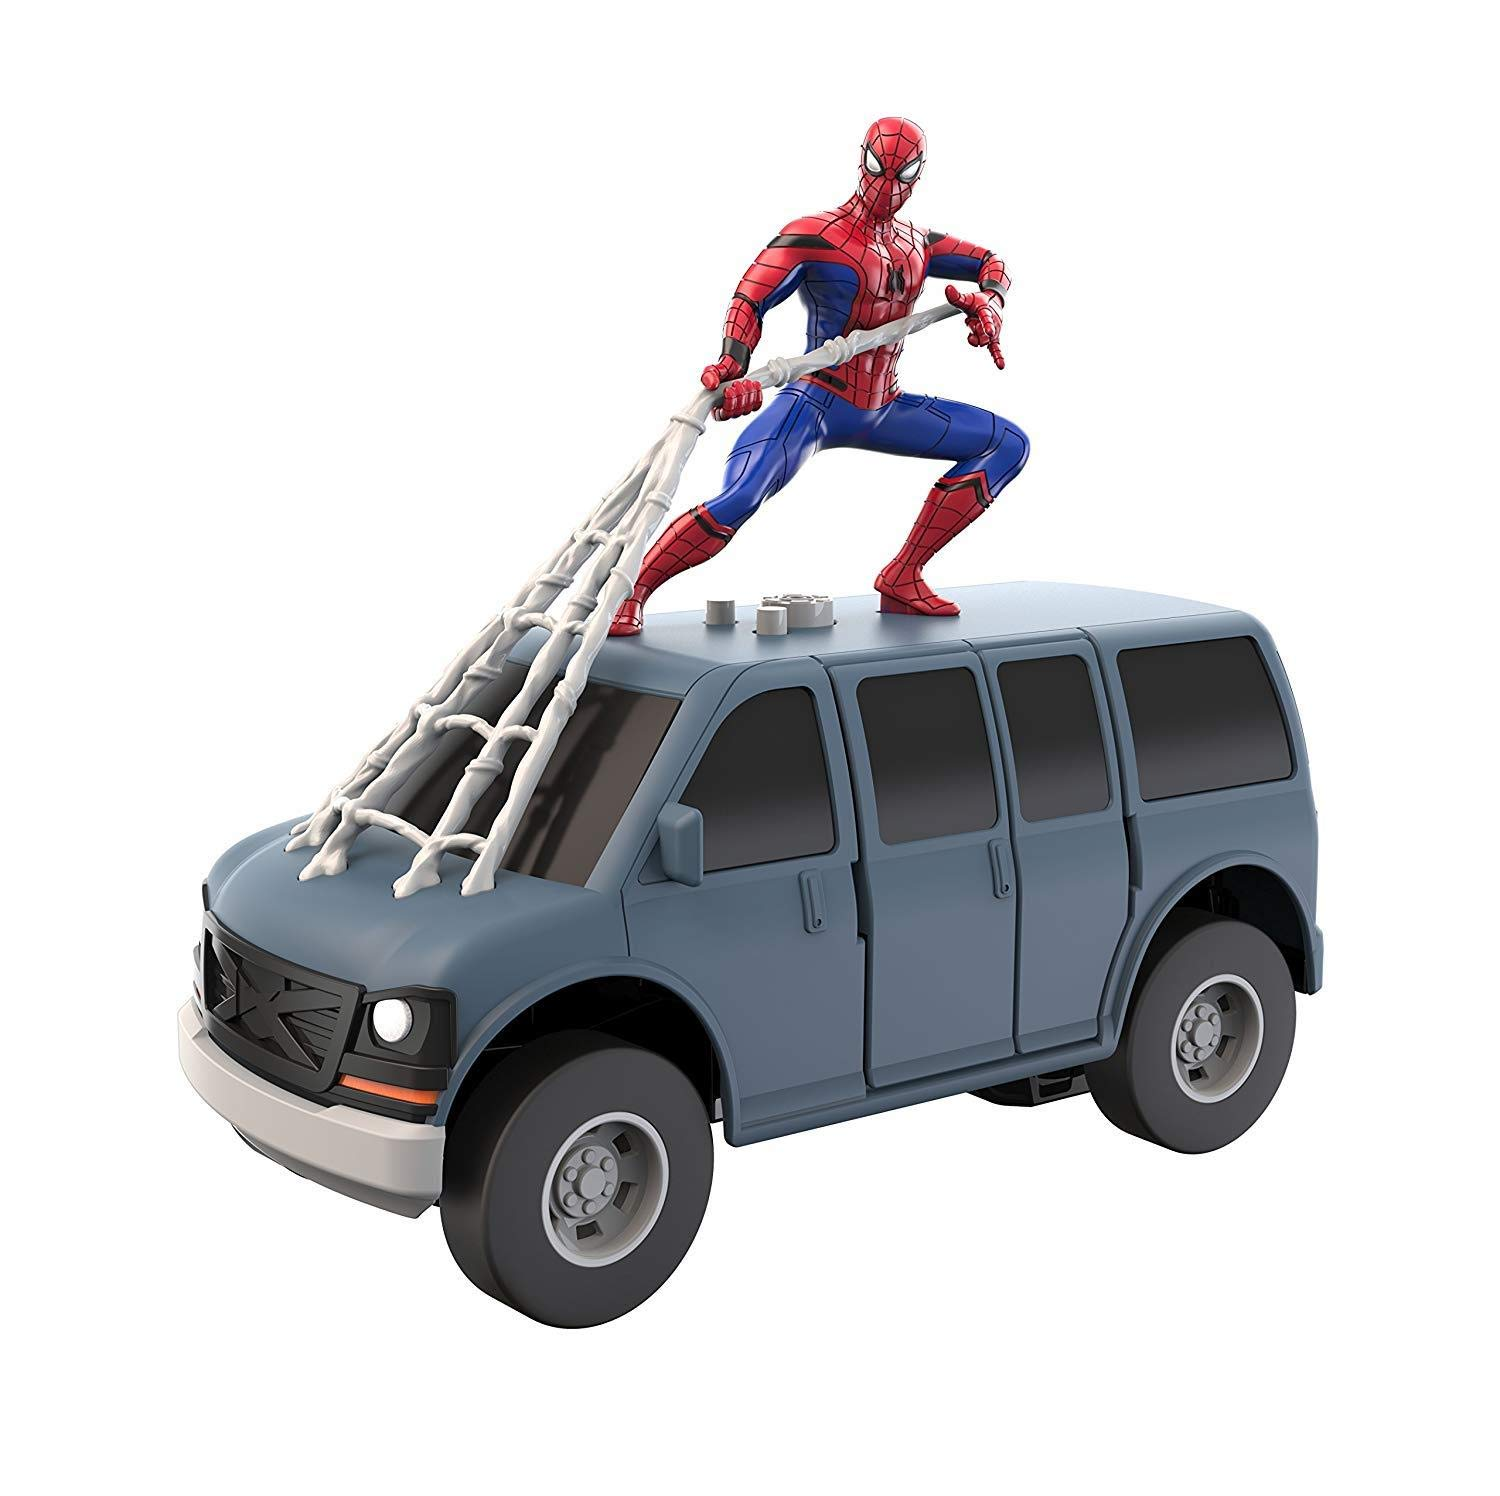 Spidermanmarvel Rc Web Wheelie Electronic Toy 9094 By Spider-man